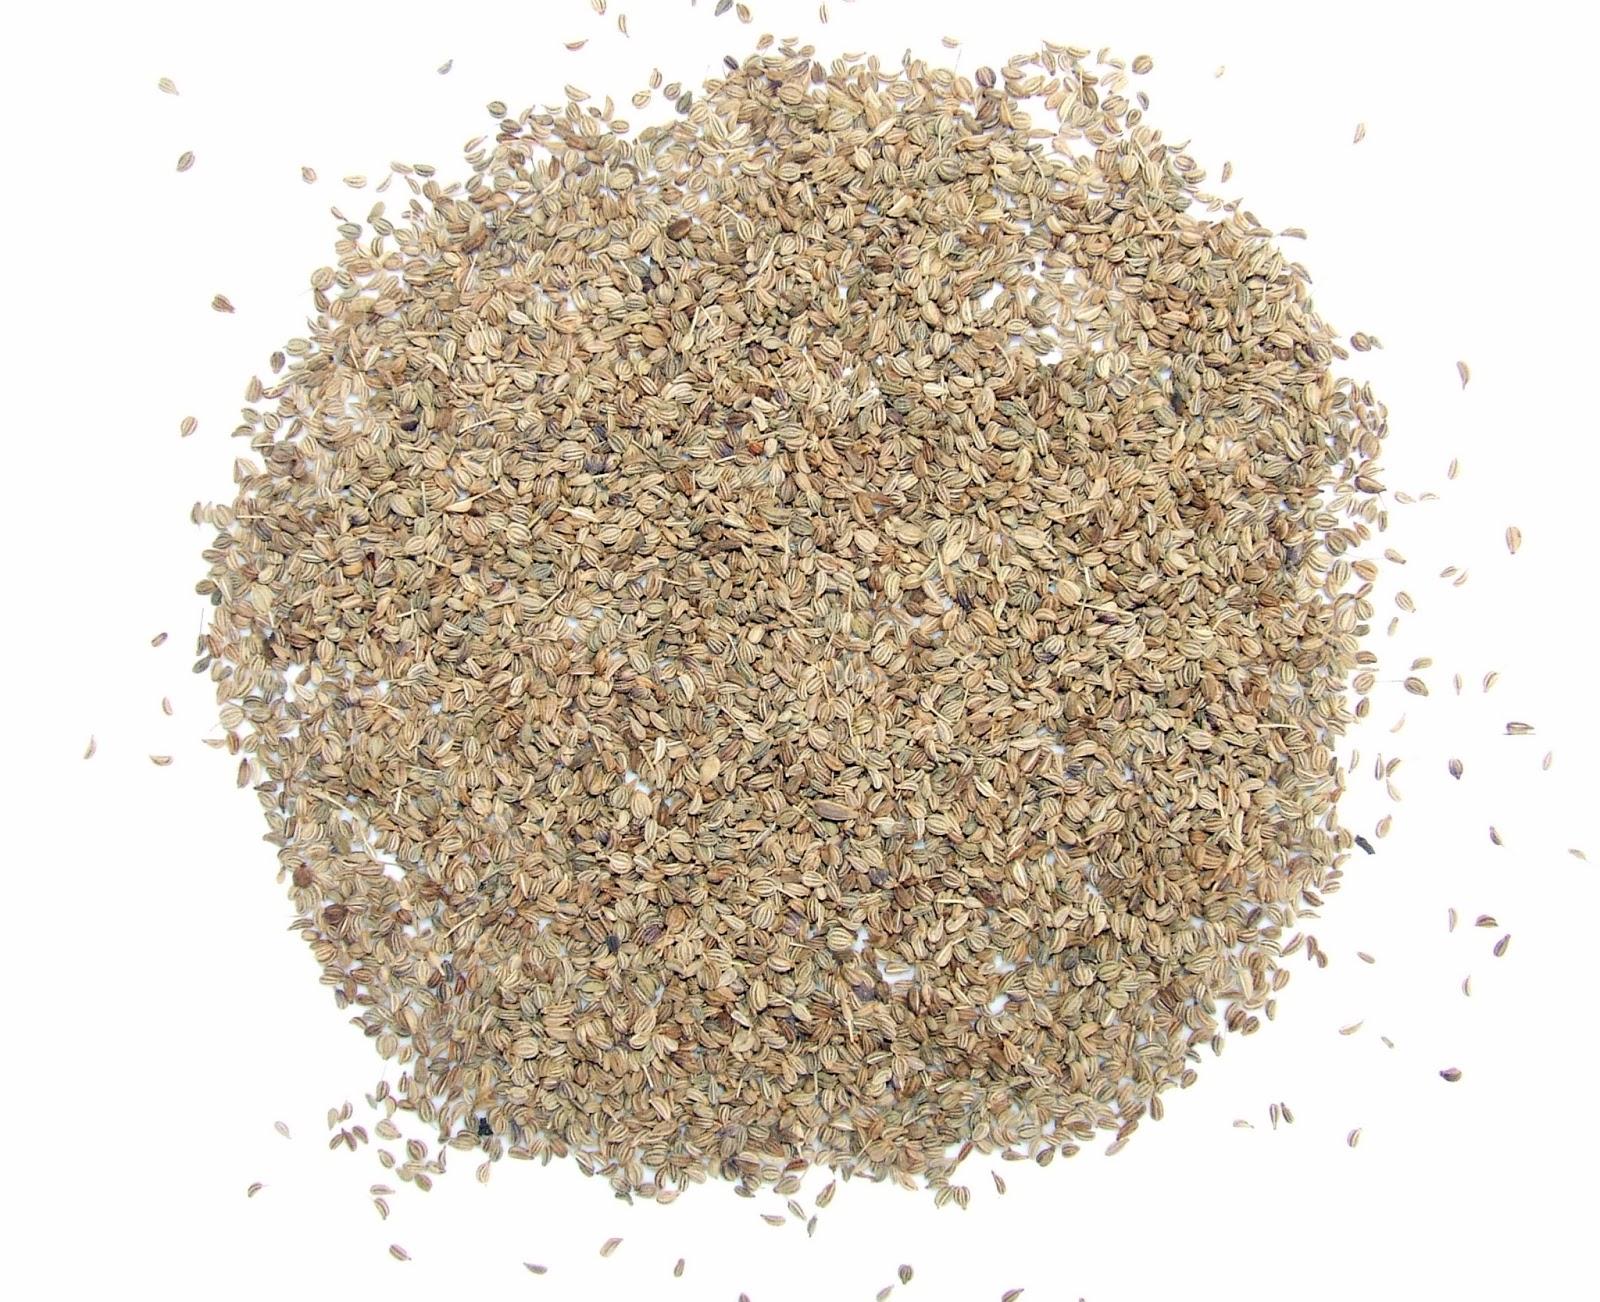 how to eat ajwain for gas